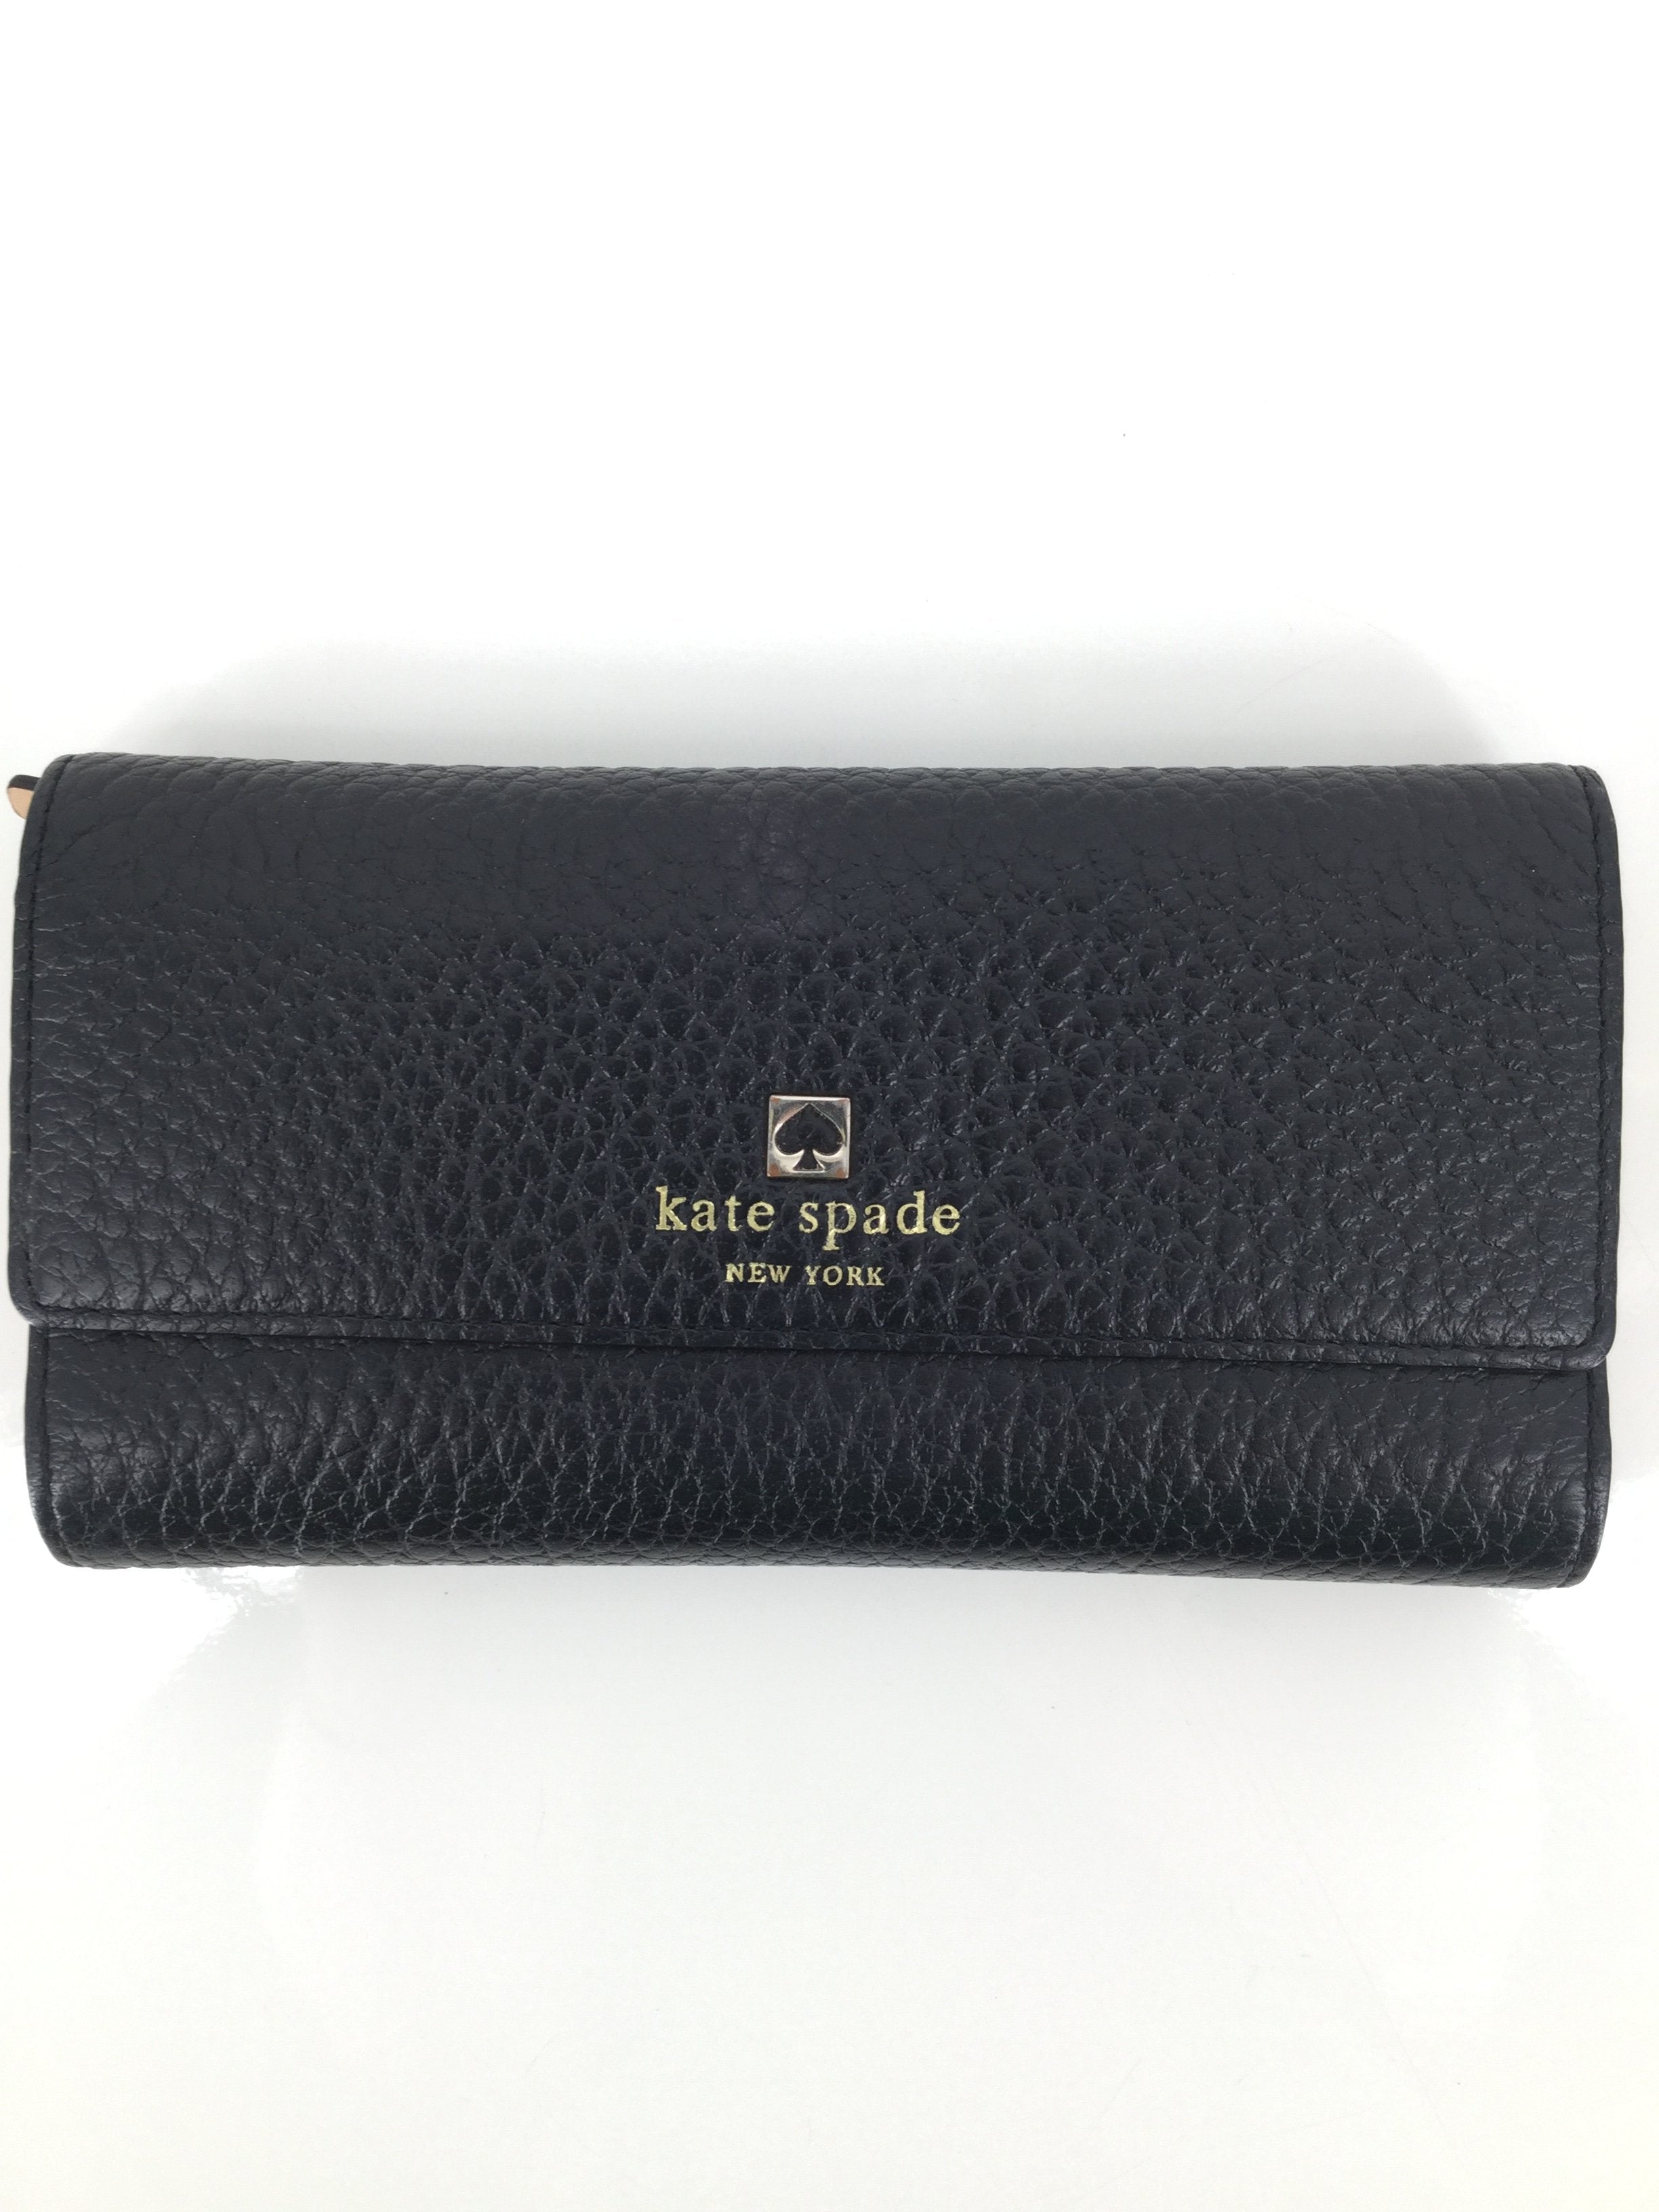 Kate Spade Wallet, Black, Medium - <P>SUPER TRENDY KATE SPADE DESIGNER WALLET. SHOWS VERY SLIGHT SIGNS OF WEAR. MAKE HER YOURS FOR ONLY $45.</P>